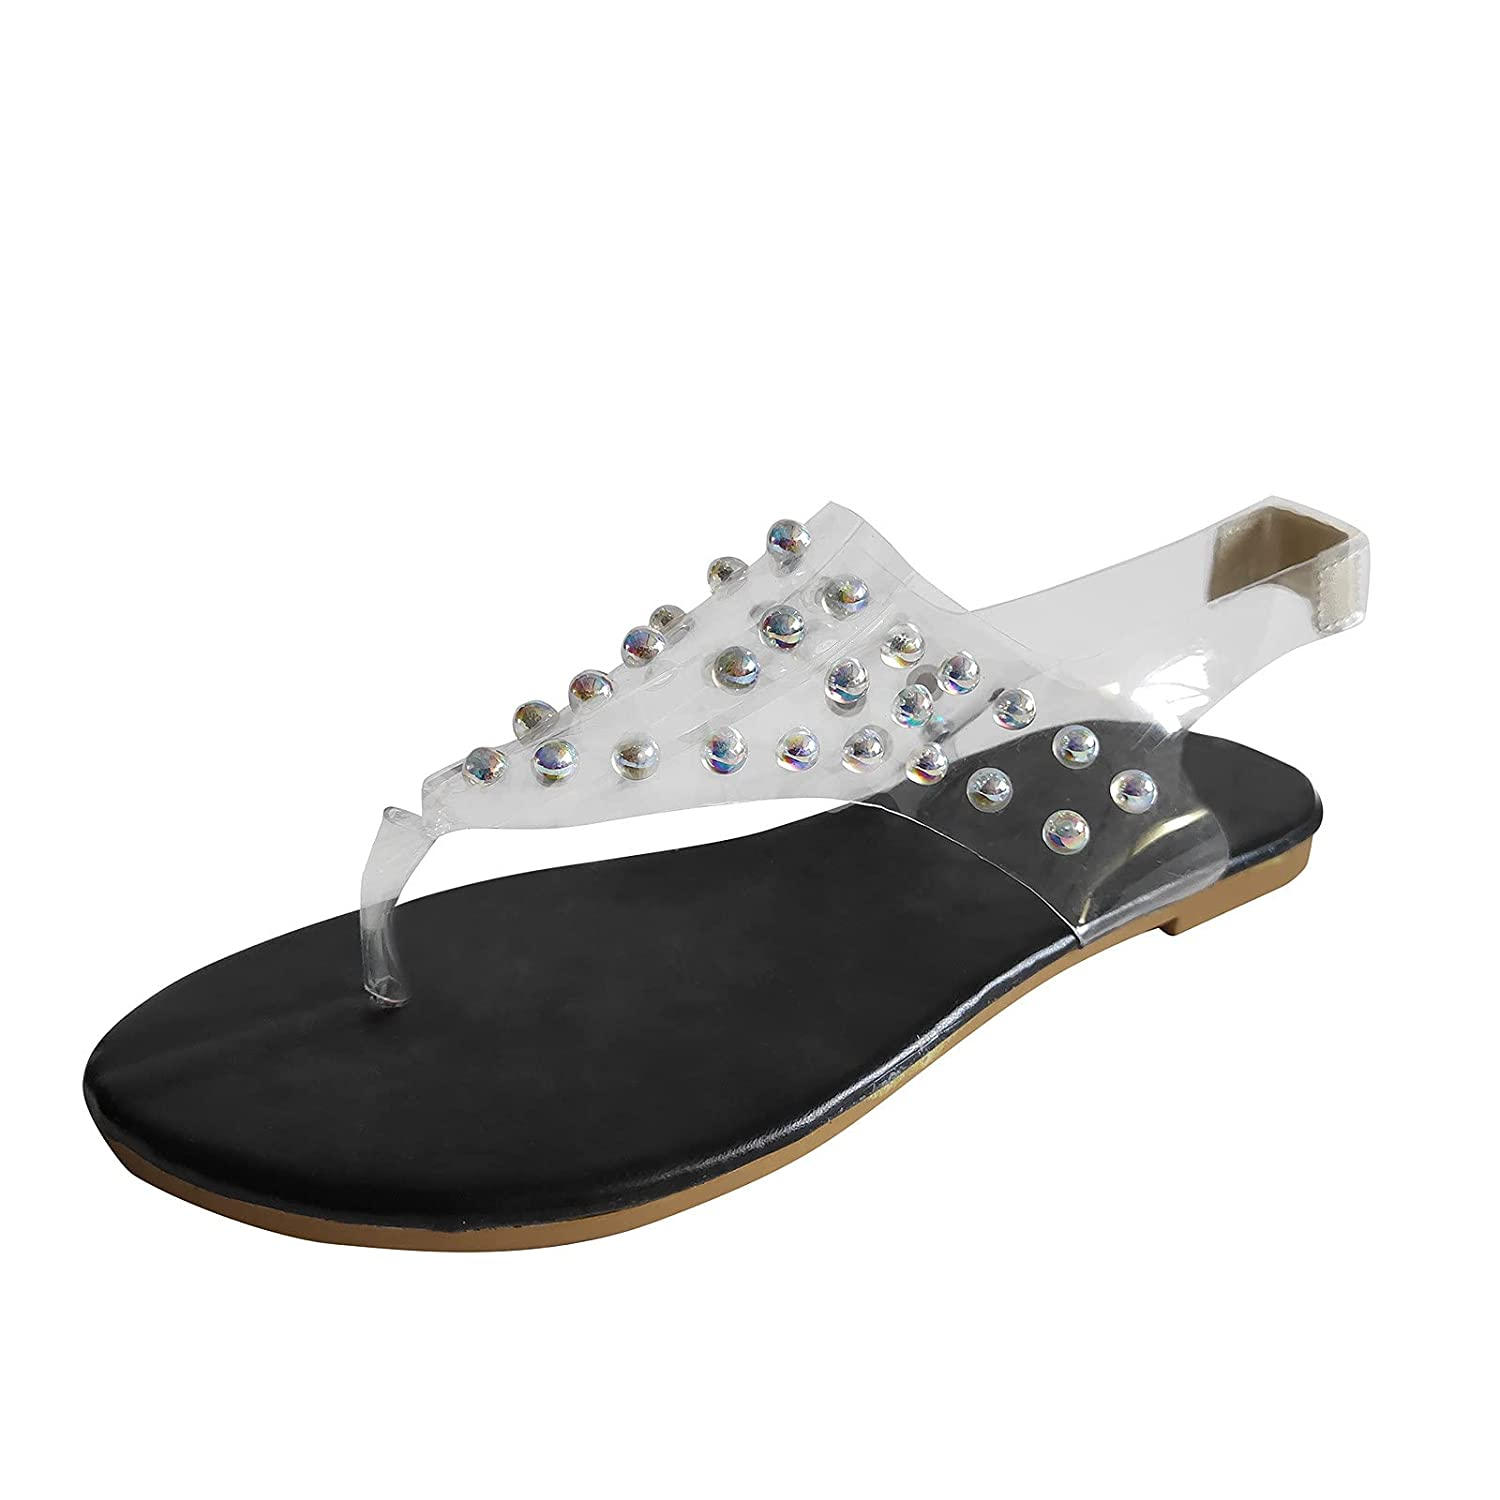 Reokoou Spring new work Women Sandals Limited time trial price Beach Open P Toe Transparent Slippers Flat